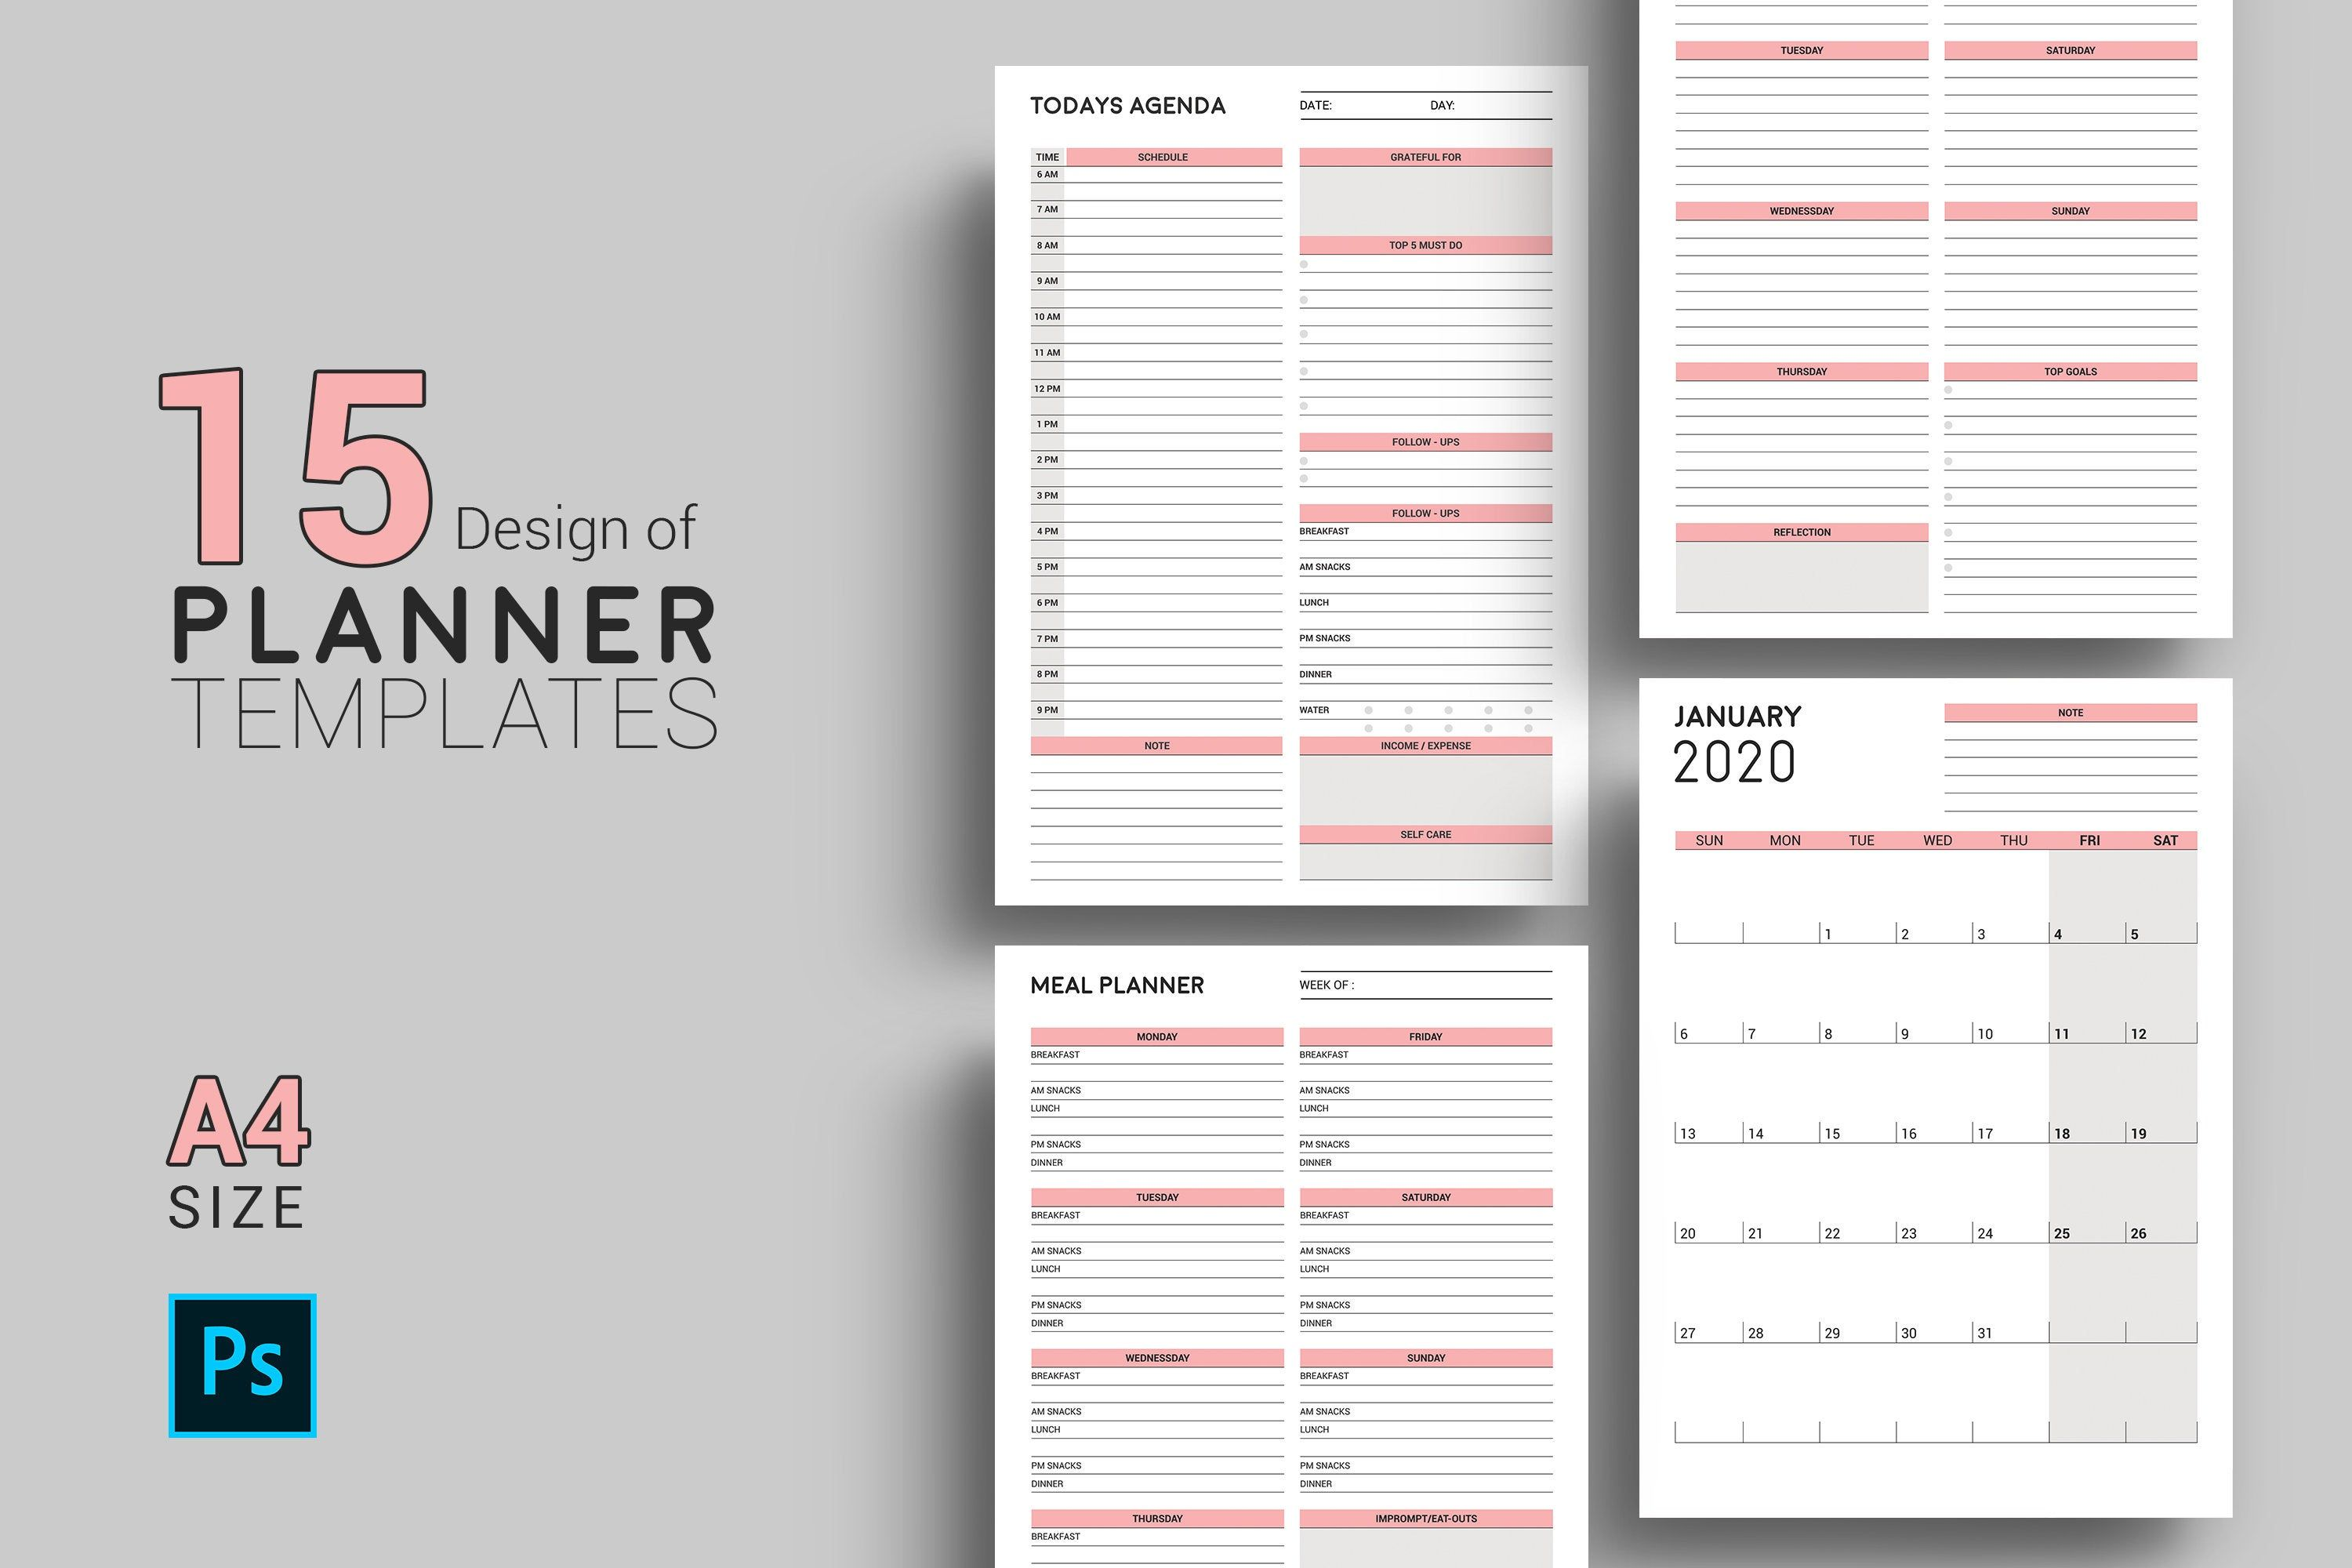 Planner Template Daily Planner Monthly Planner Meal Planner Work Agenda Photoshop Template Instant Download Weekly Planner Template Planner Template Daily Weekly Planner